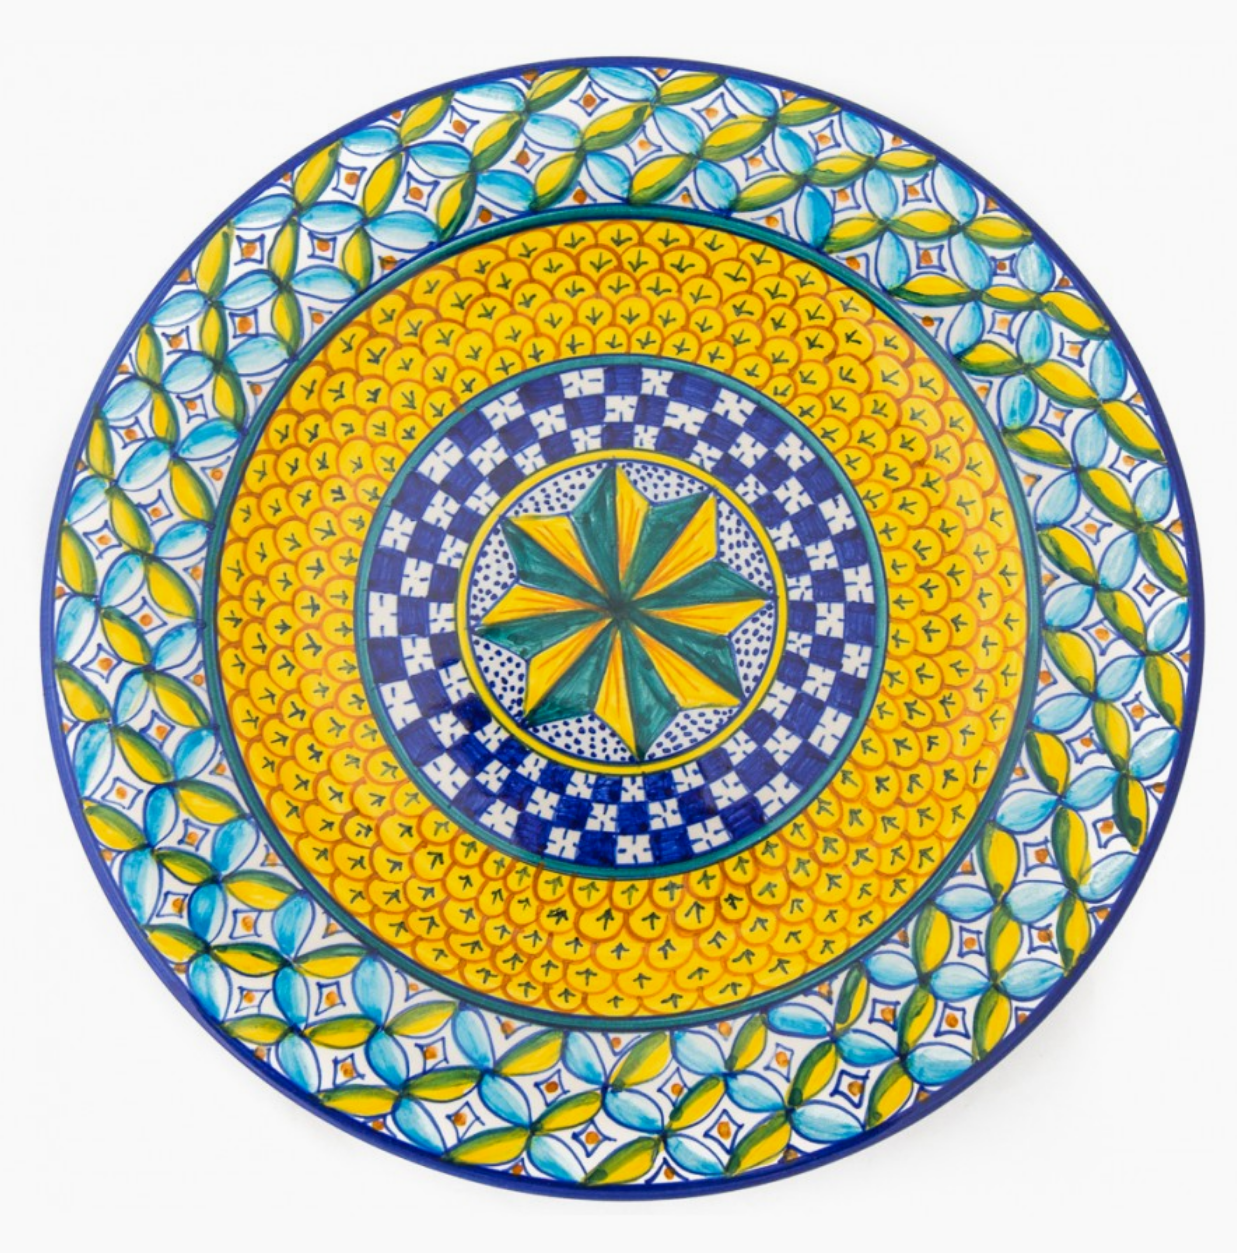 Decorative Wall Plates Archives - Italian Decorative Arts by ...